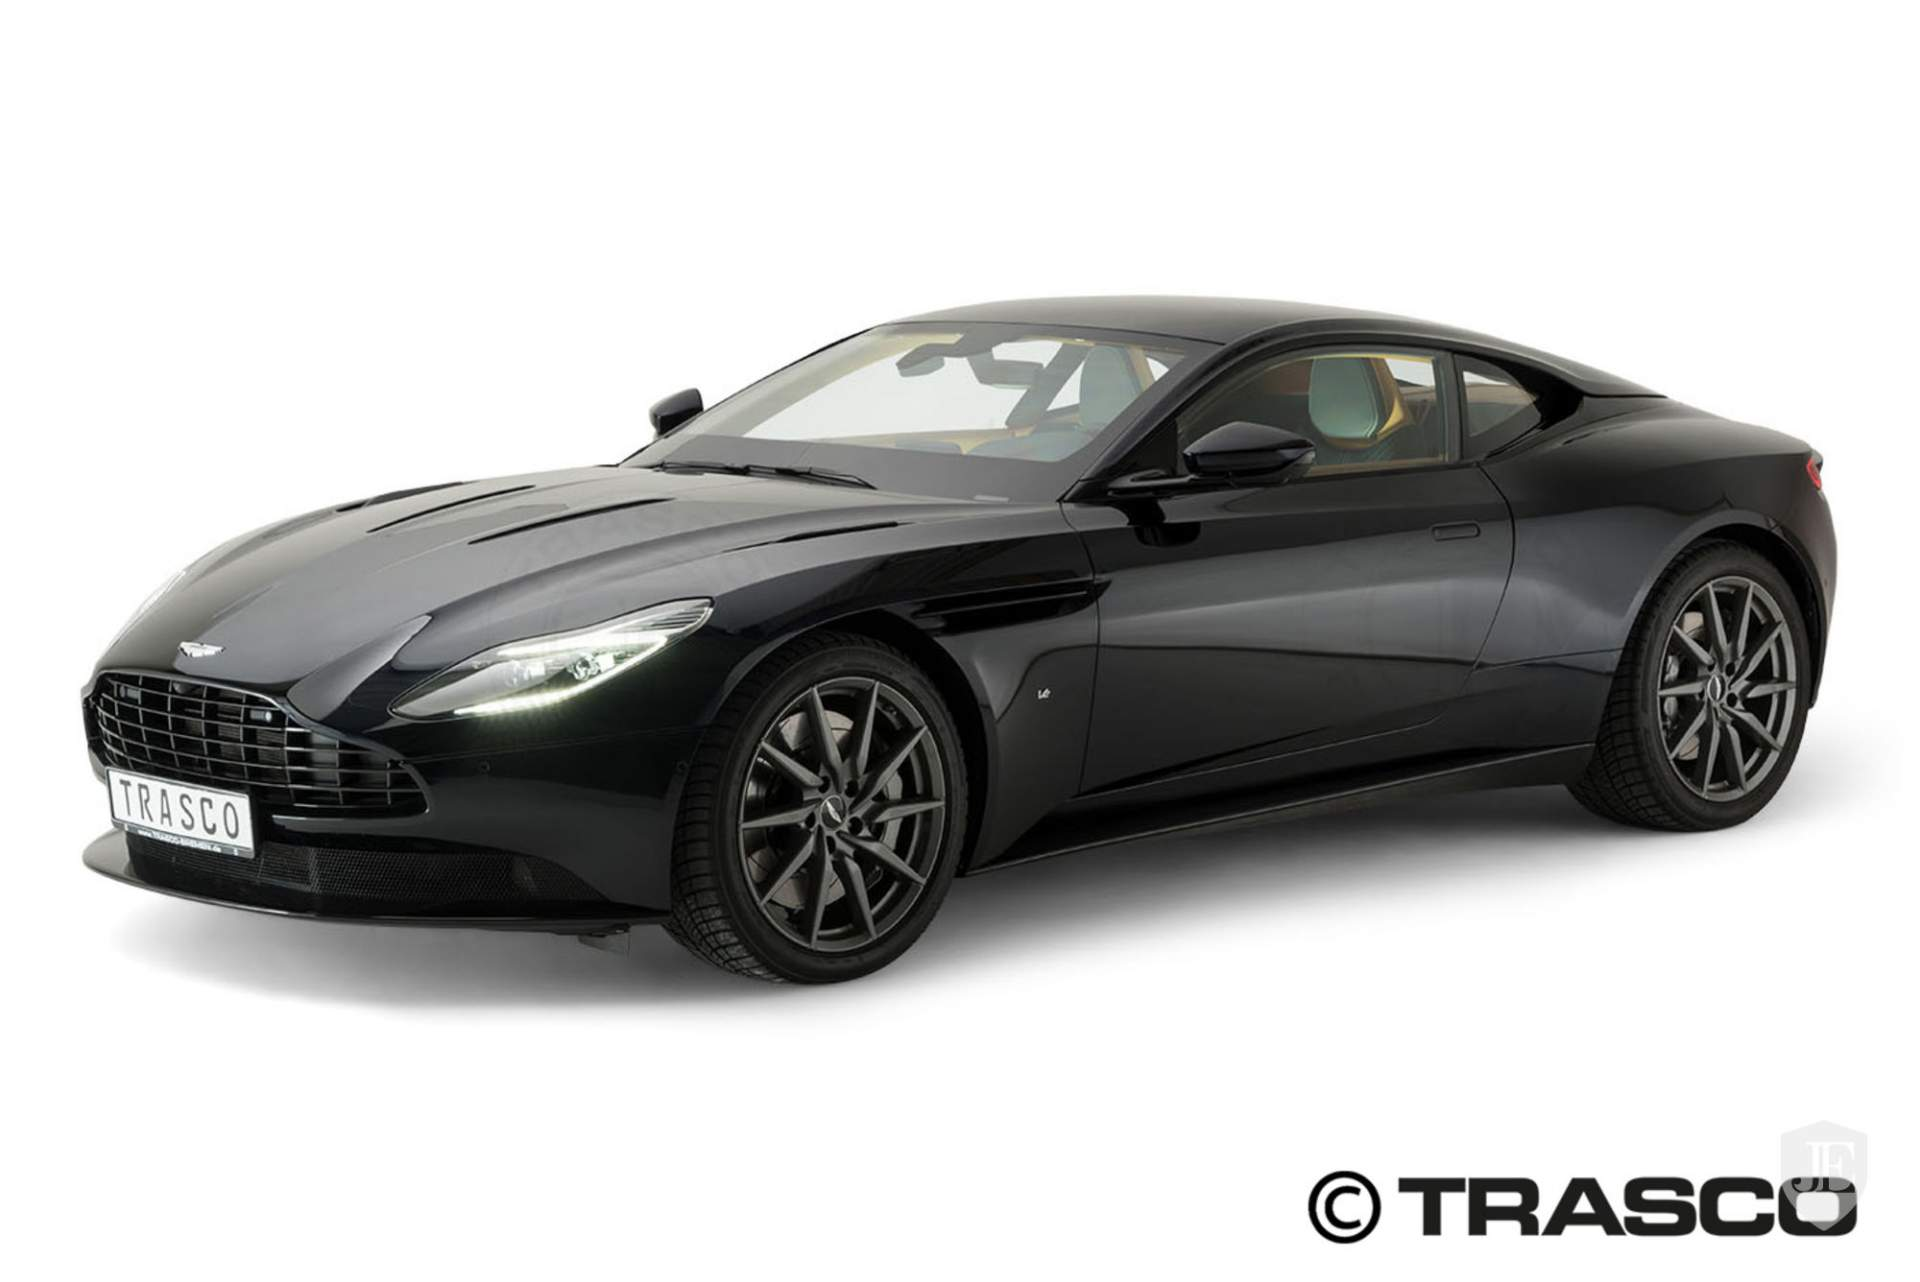 Armored Aston Martin DB11 by Trasco (2)